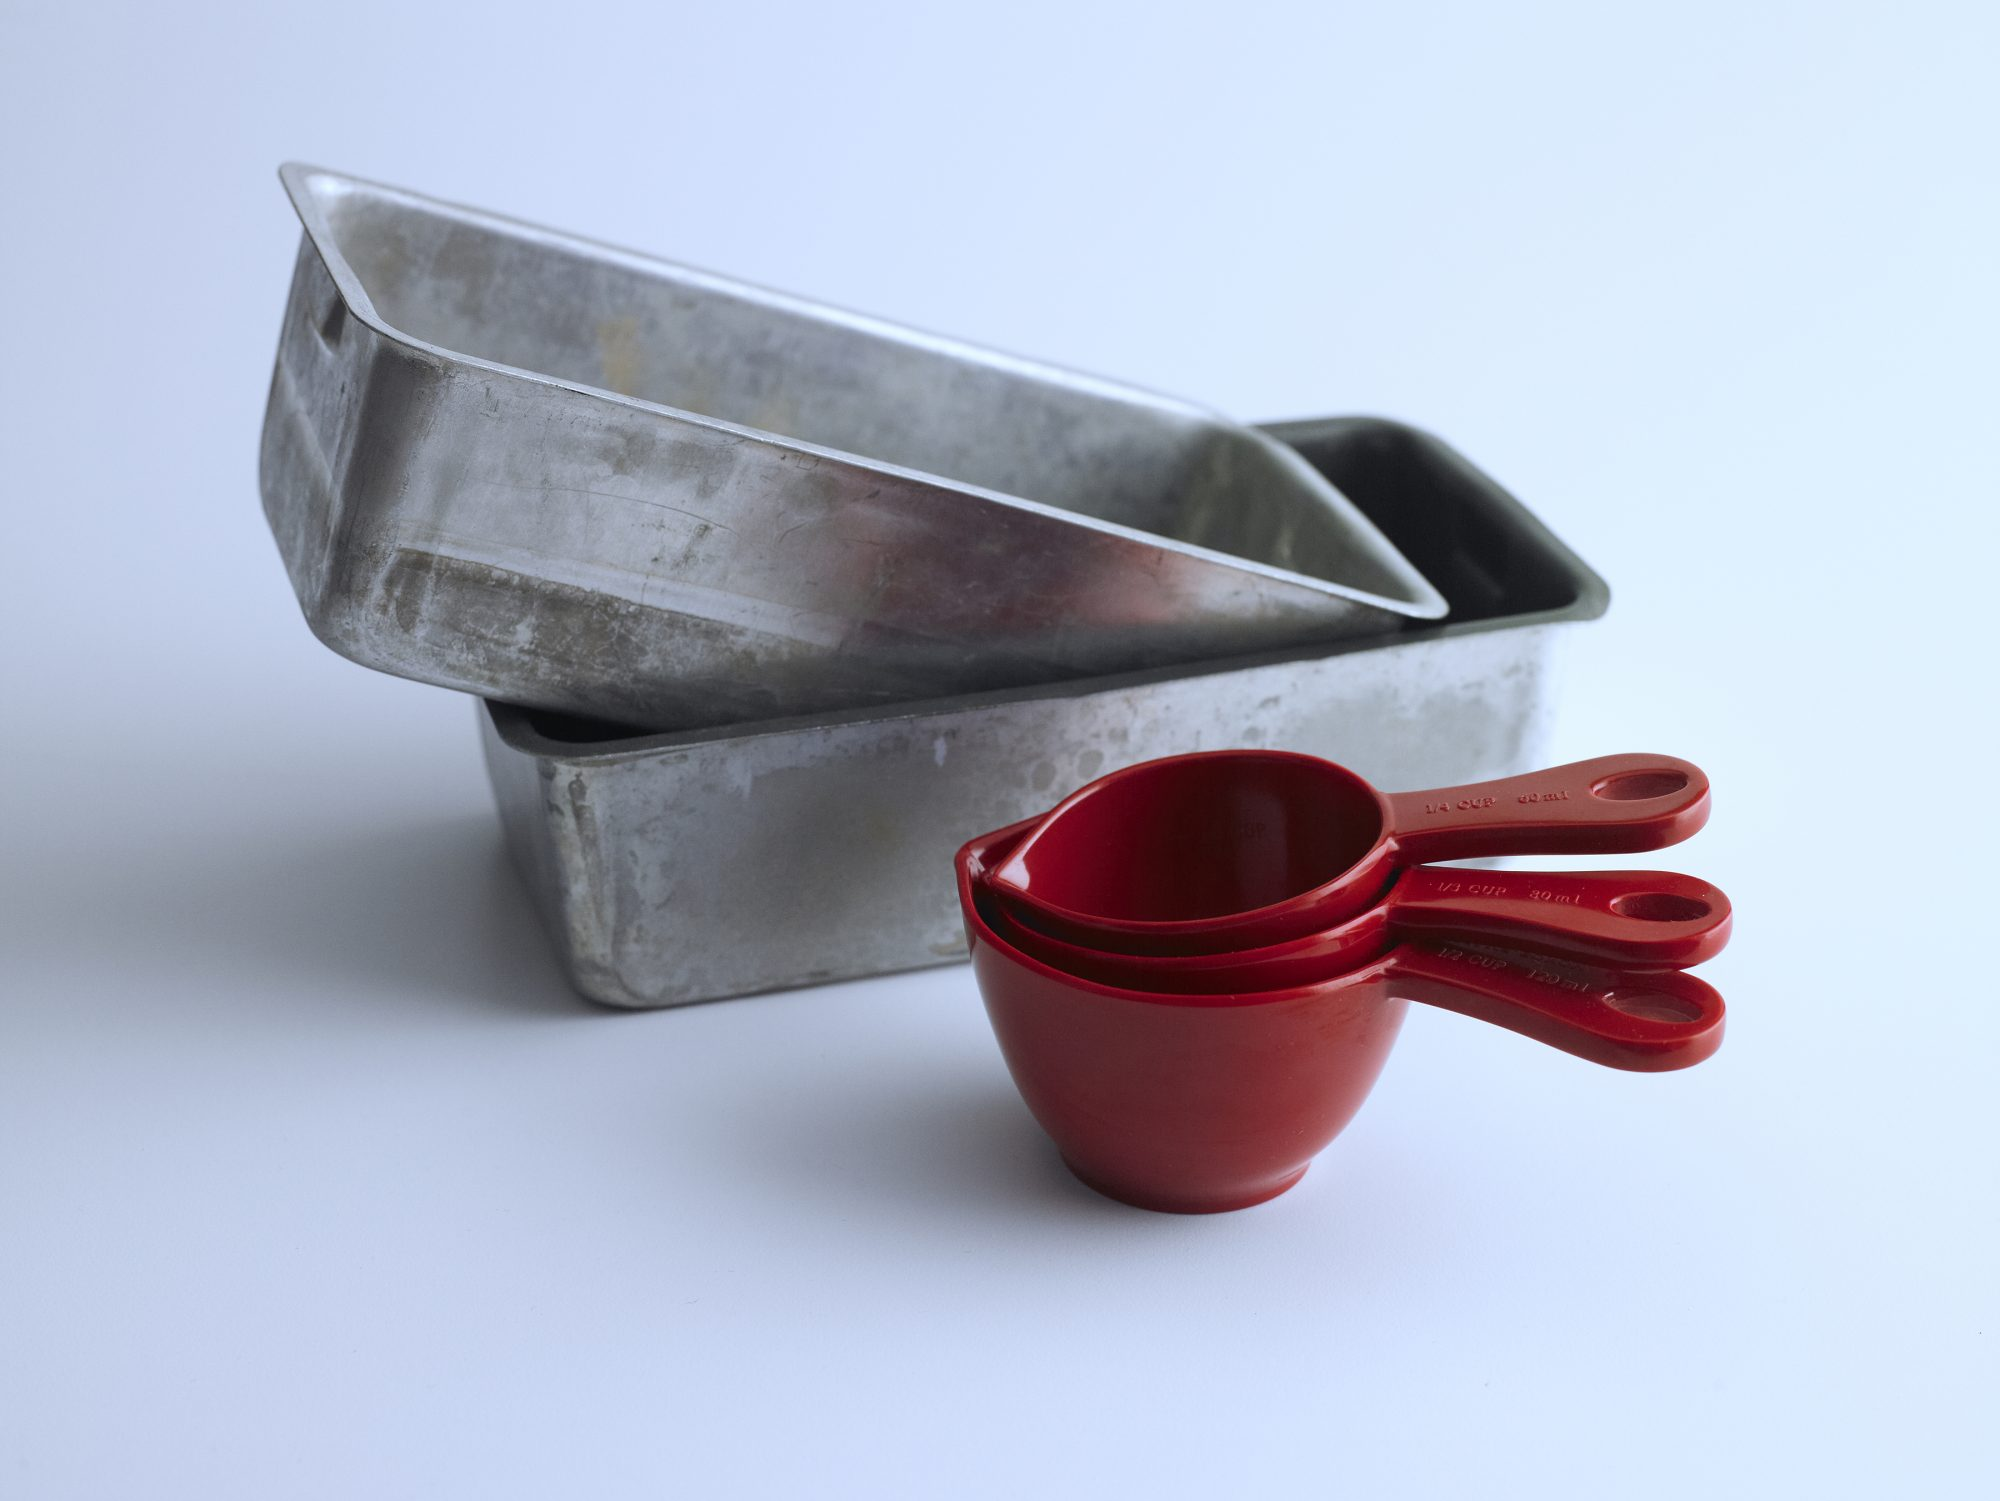 bread loaf pans and measuring cups